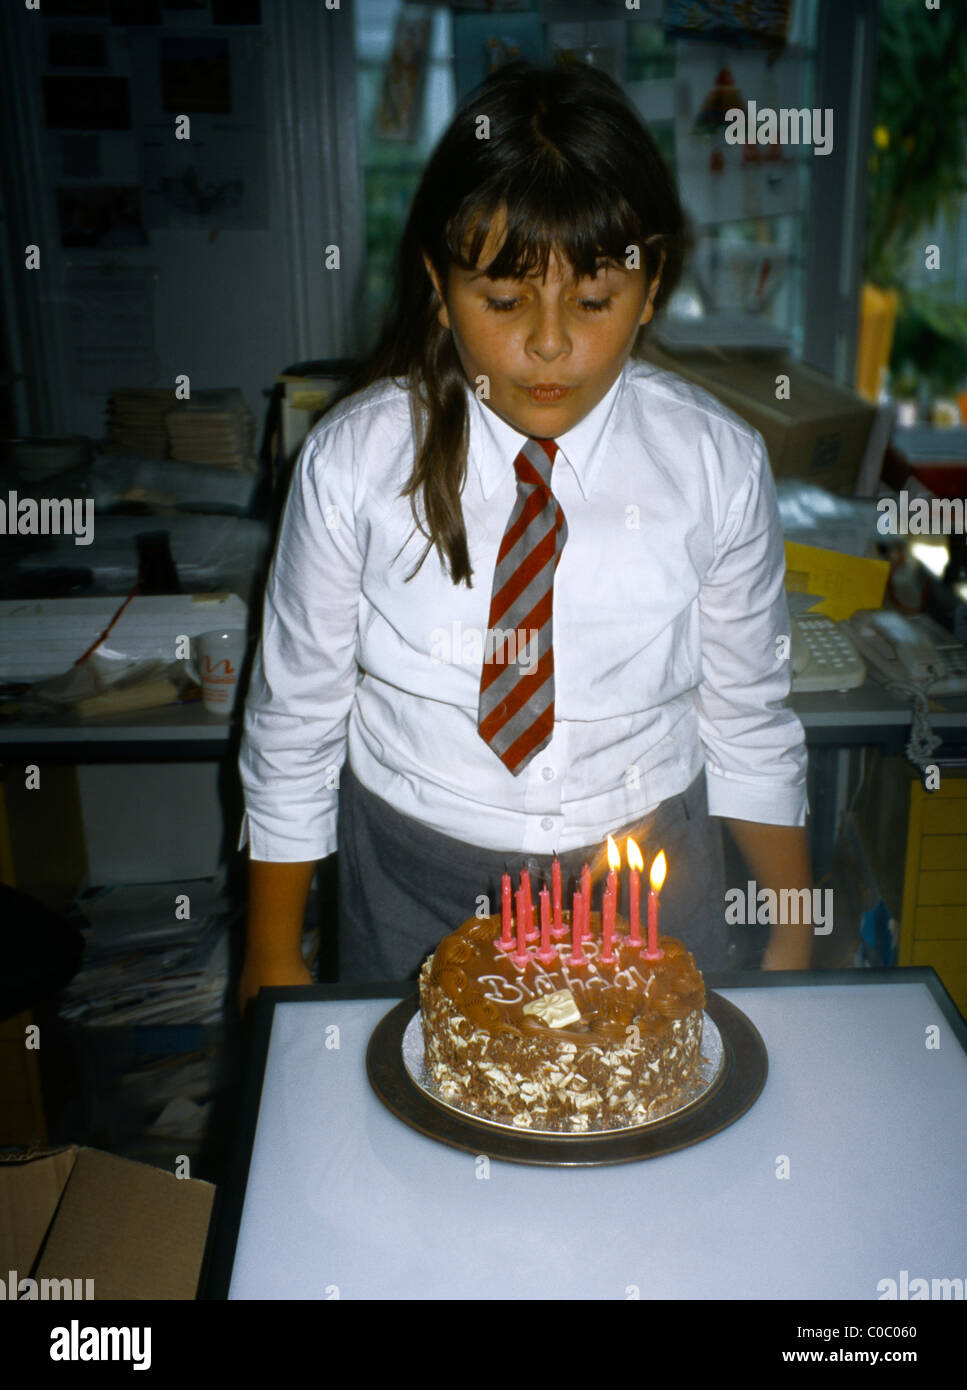 11 Year Old Girl Blowing Out Candles On Her Birthday Cake